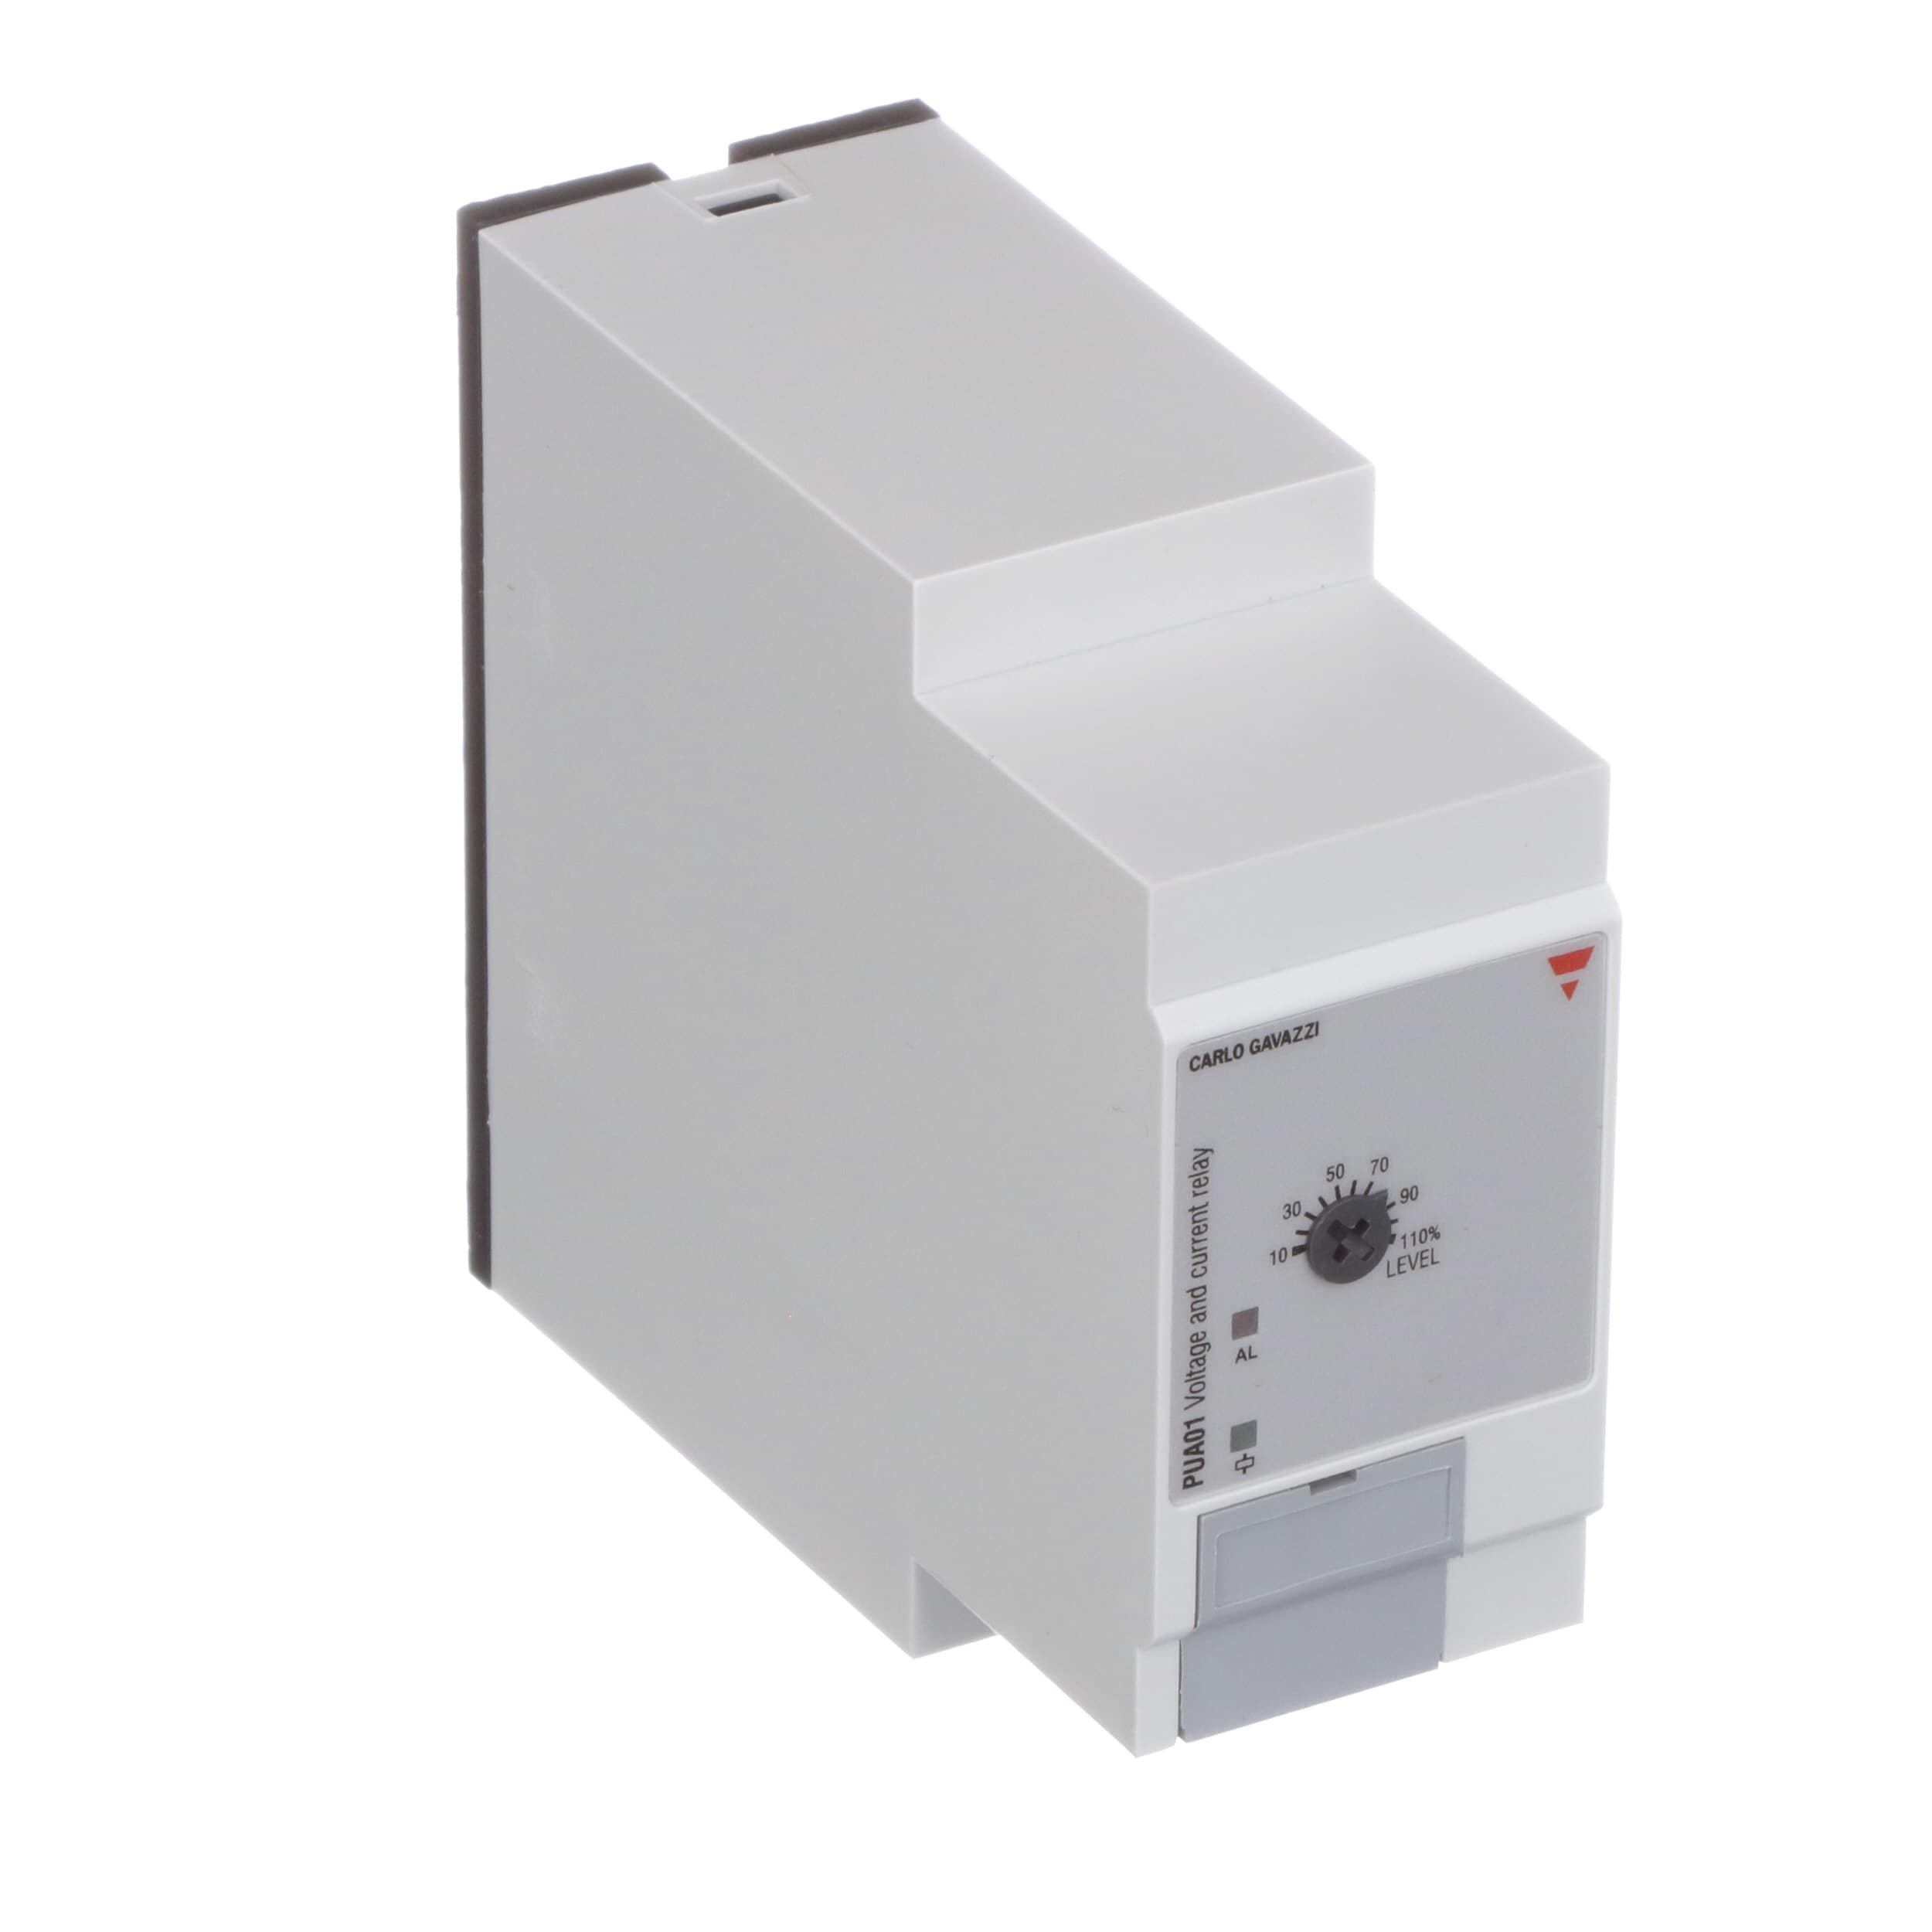 Carlo Gavazzi Inc Pua01cb23500v Relay Monitor E Mech In Circuit Breaker Voltage Spdt Cur Rtg 8 5aac Adc Ctrl V 115 230ac Pnl Mnt Allied Electronics Automation